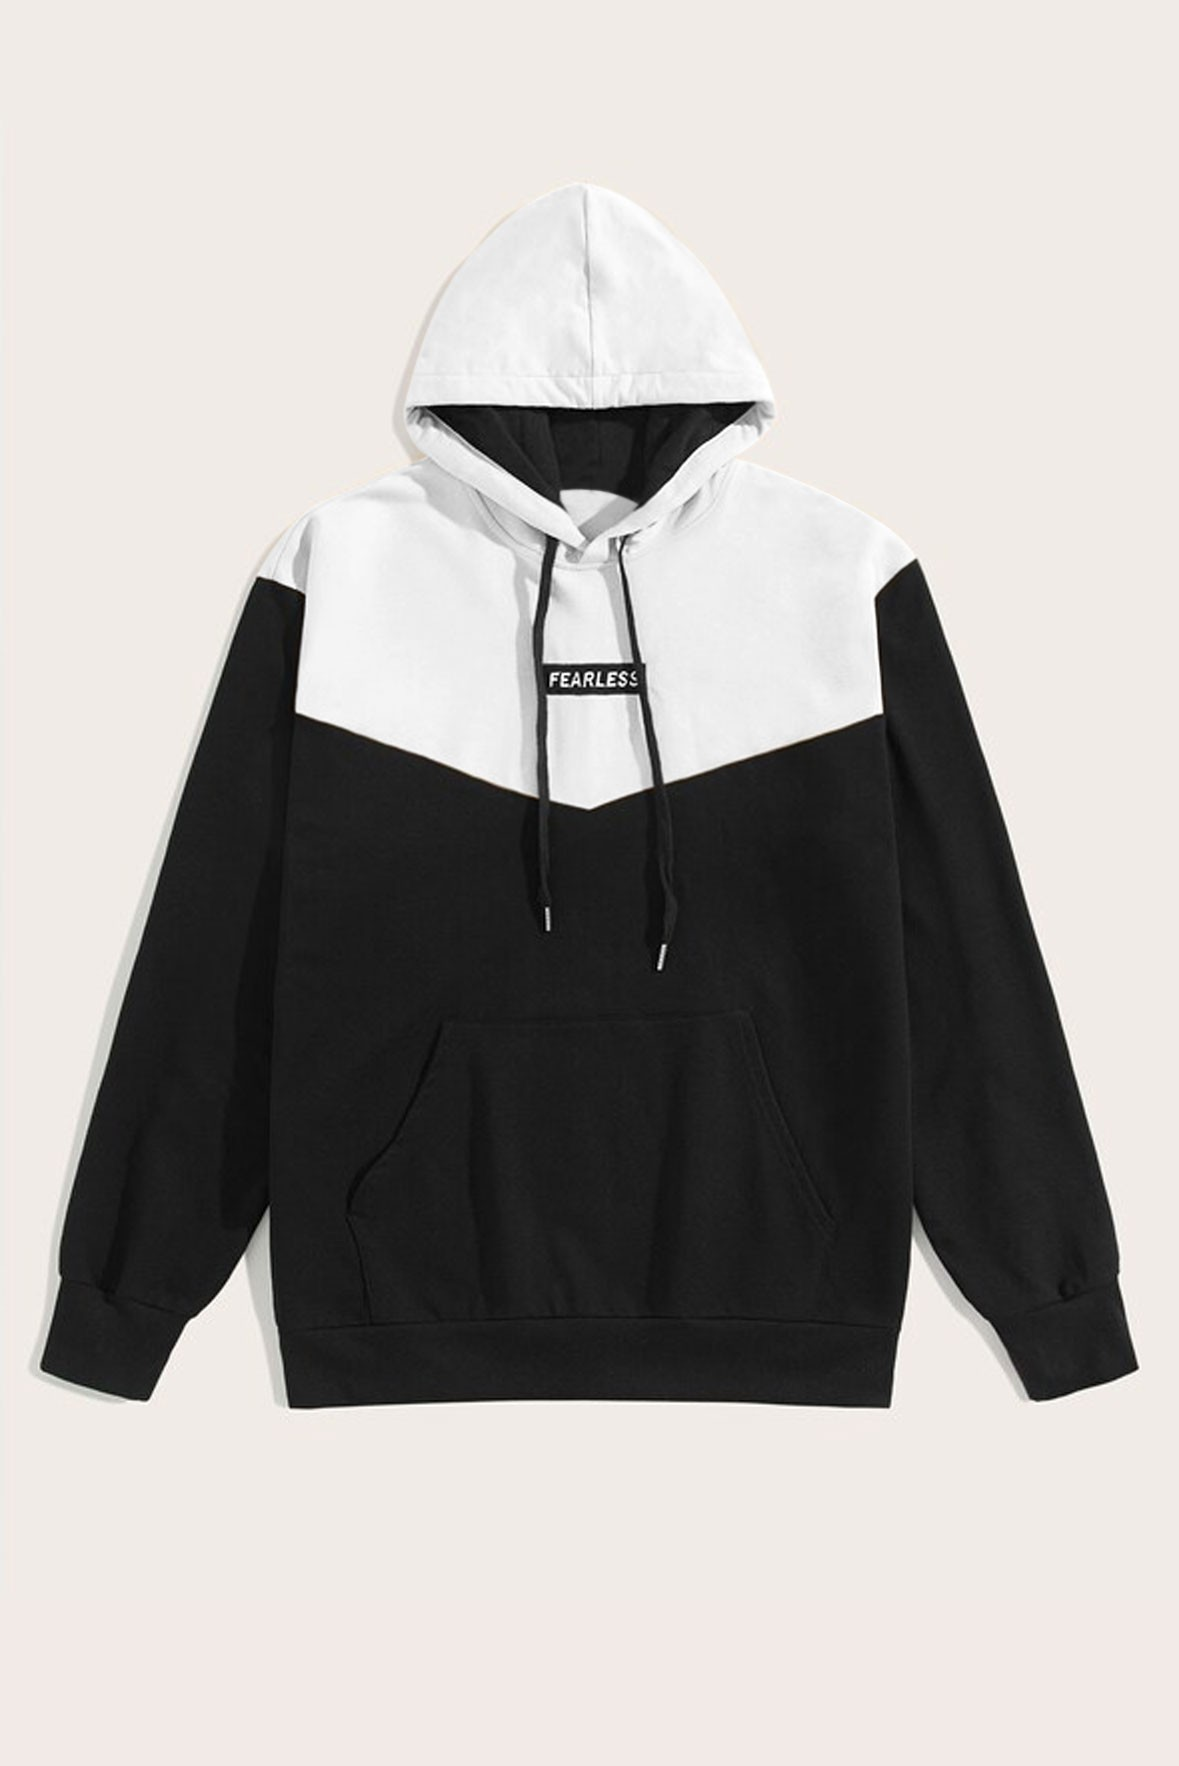 White with black hoodie